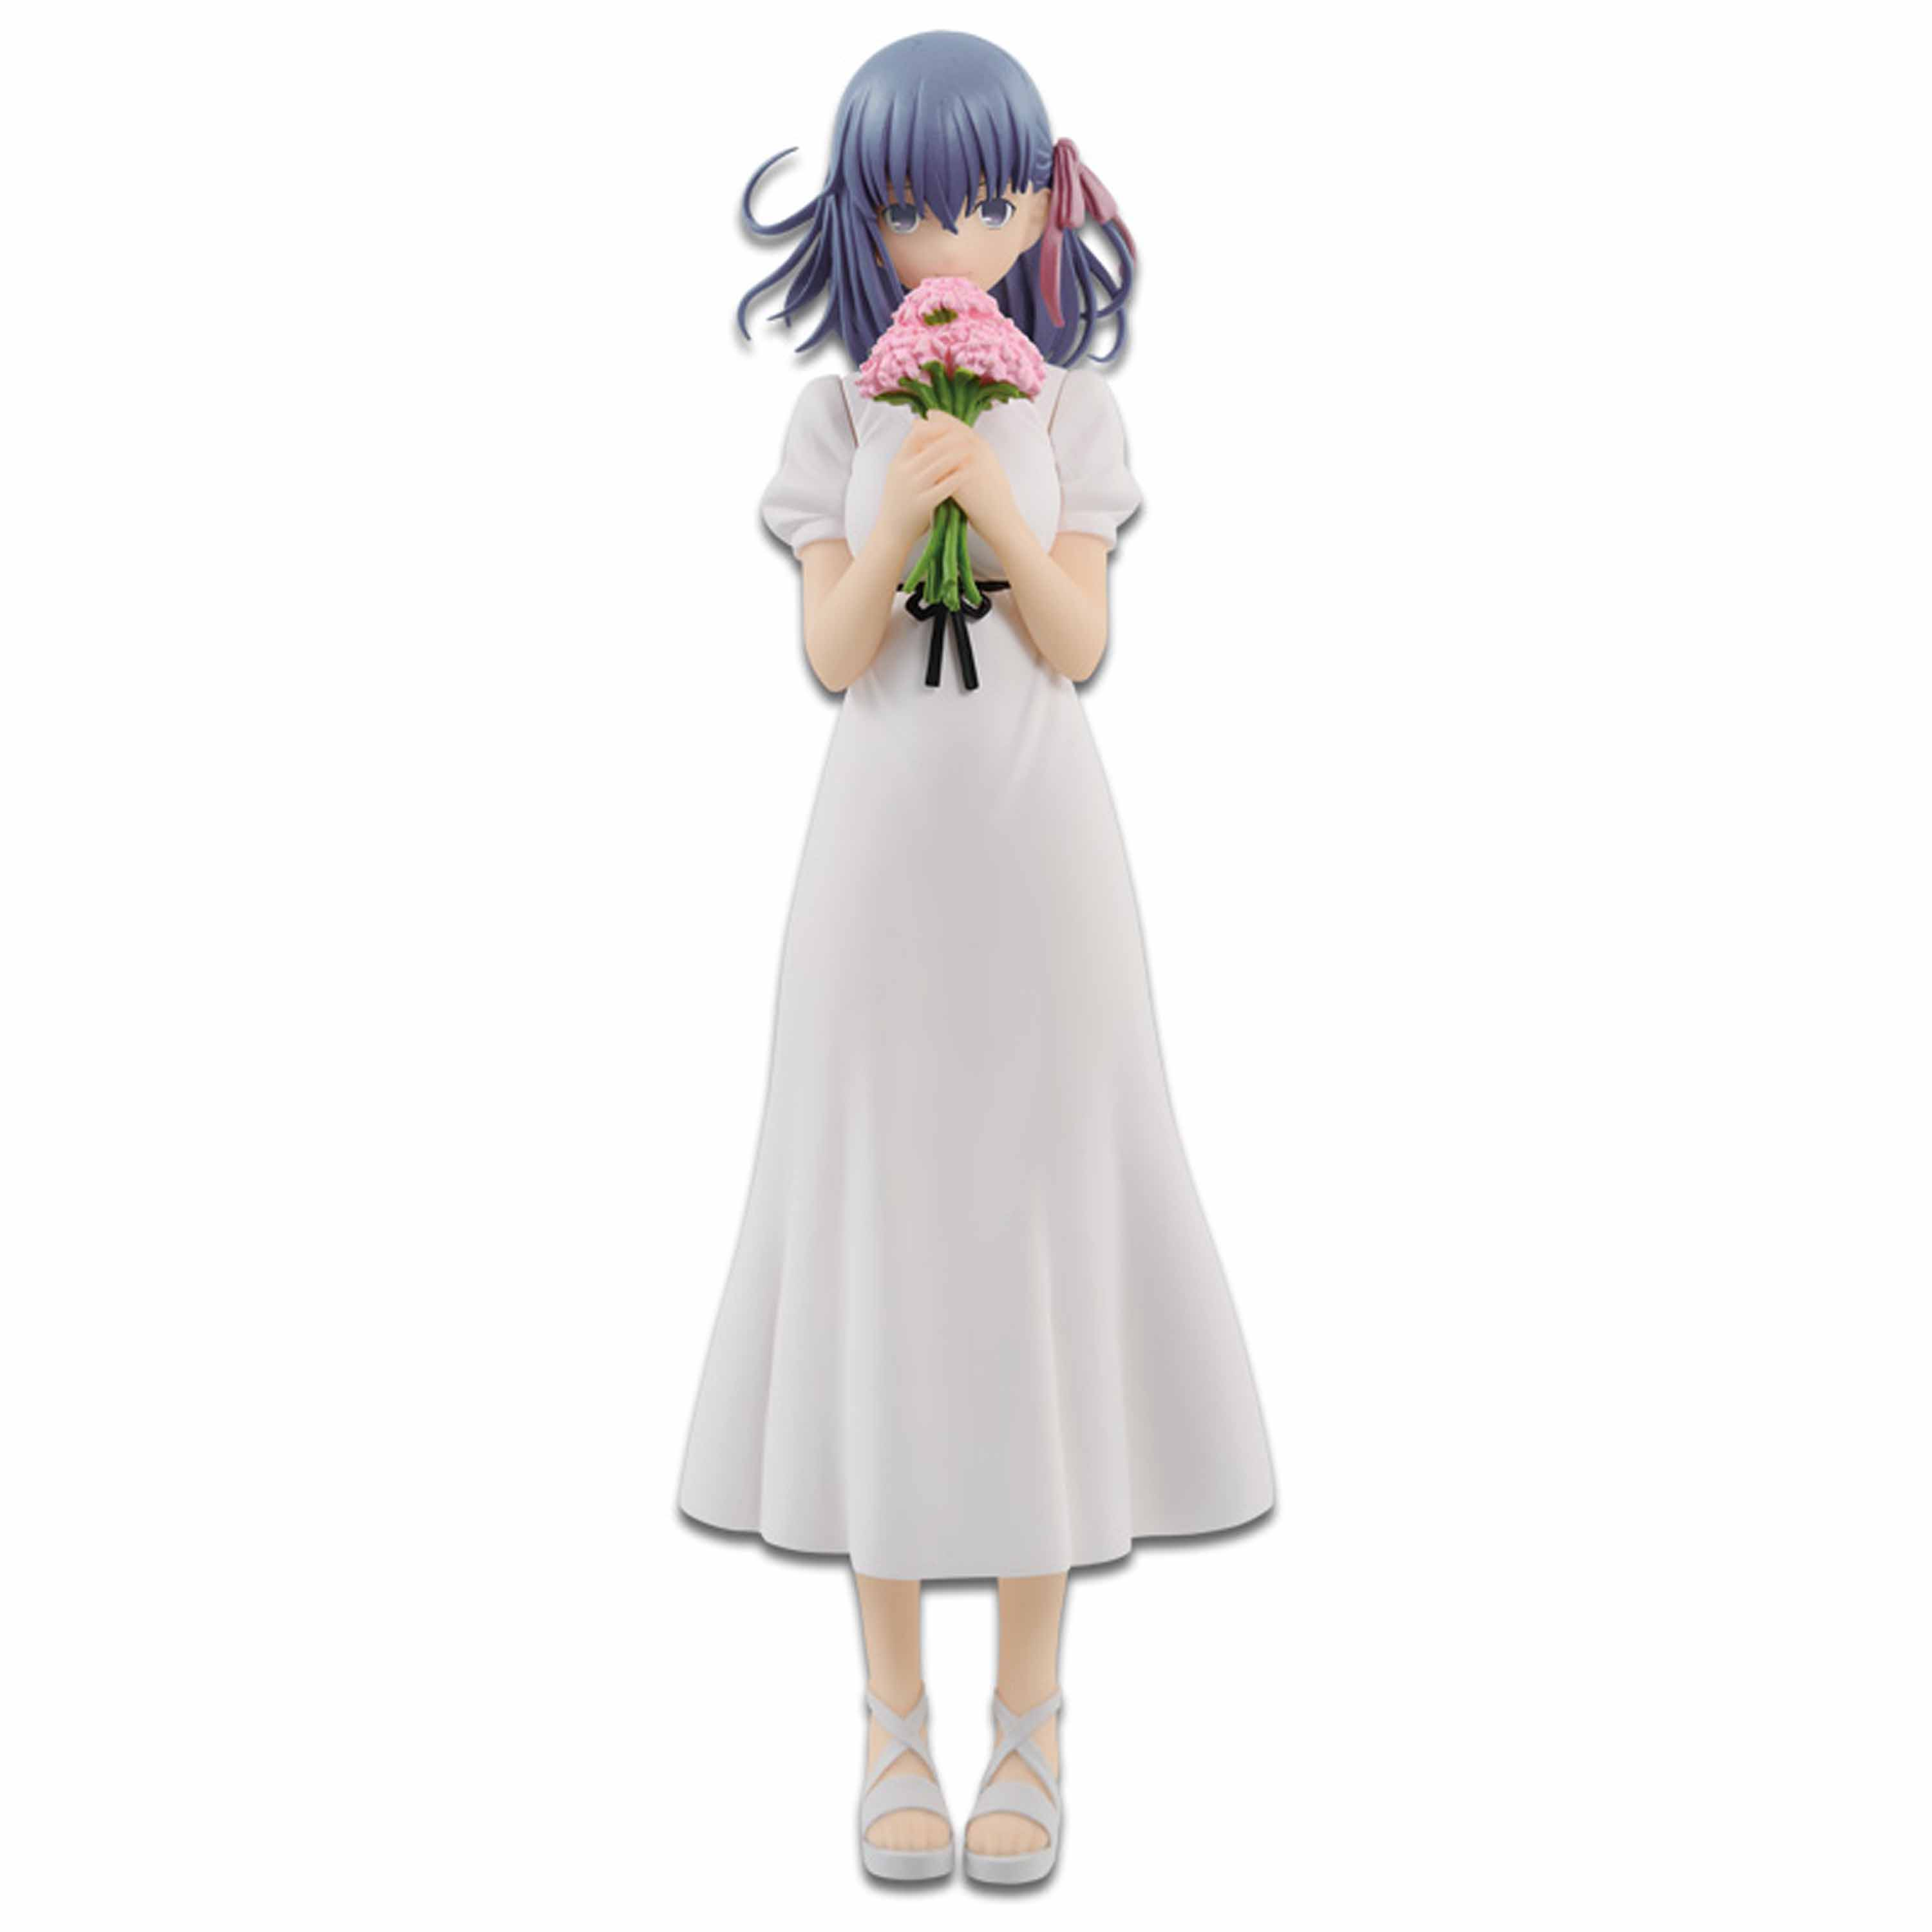 FATE/ STAY NIGHT THE MOVIE [HEAVEN'S FEEL] SAKURA MATOU FIGURE-(ผมสีน้ำเงิน)